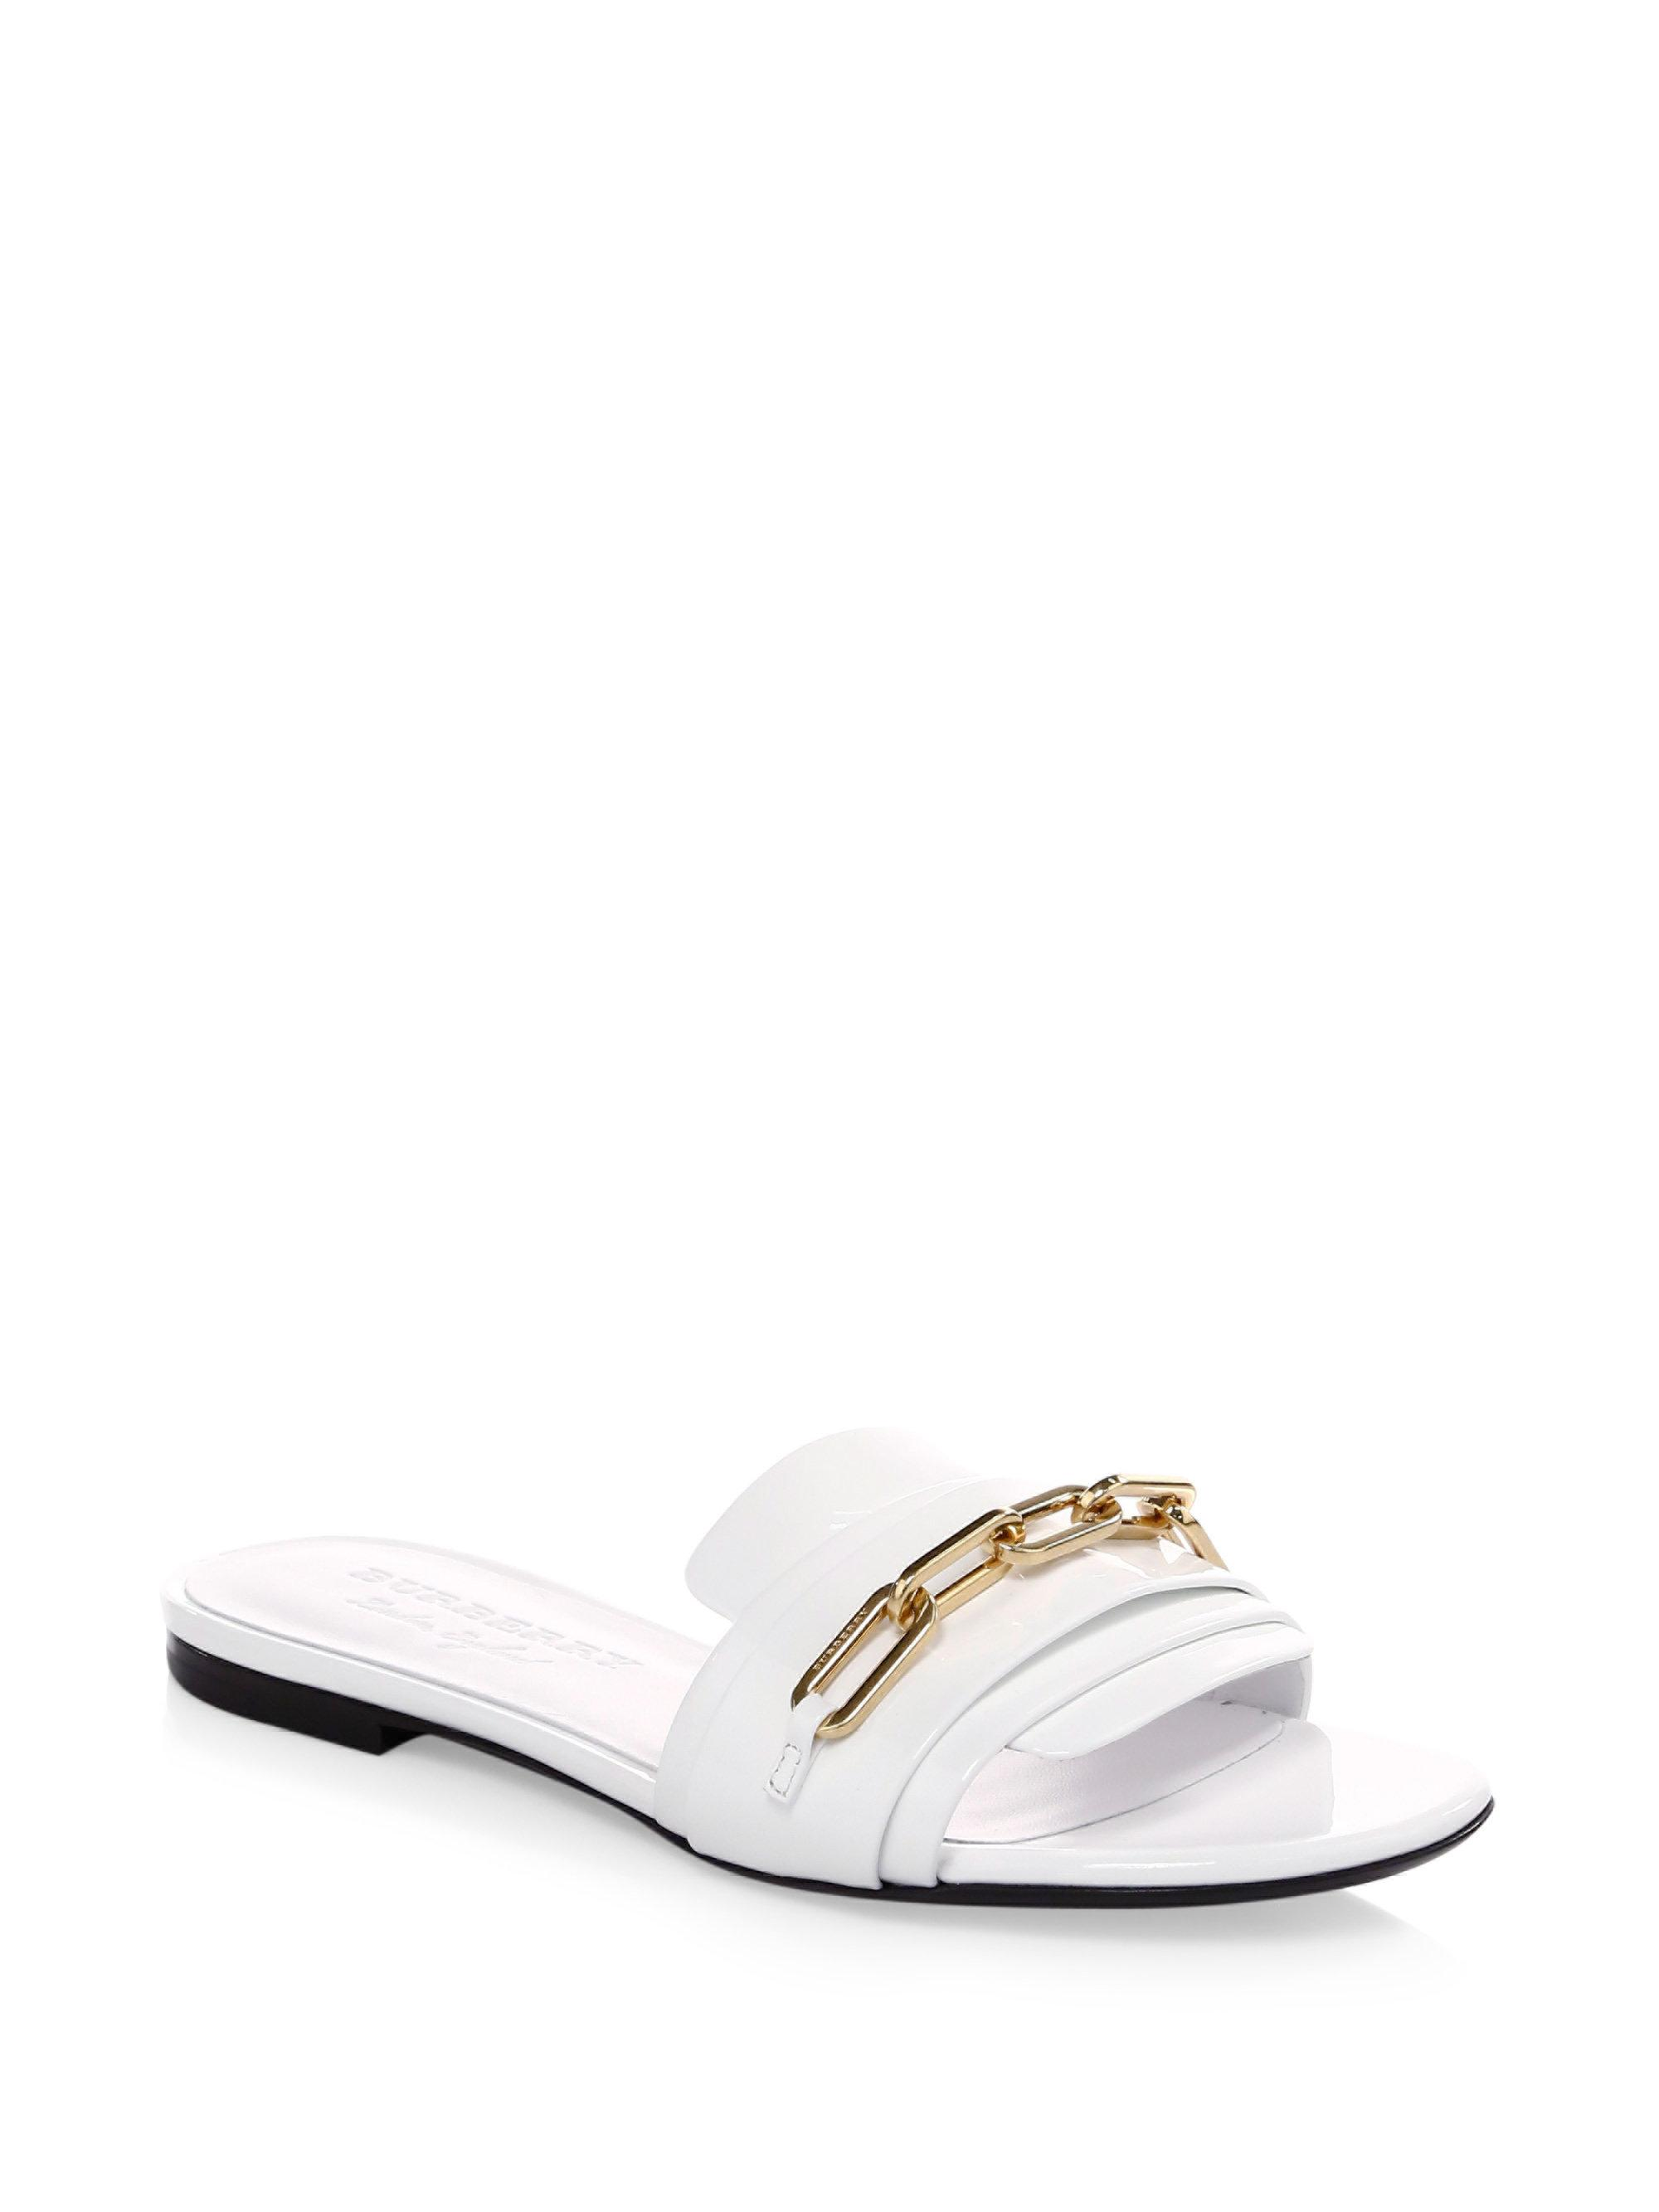 Burberry Chain Patent Leather Flat Sandals bE7fD7IR